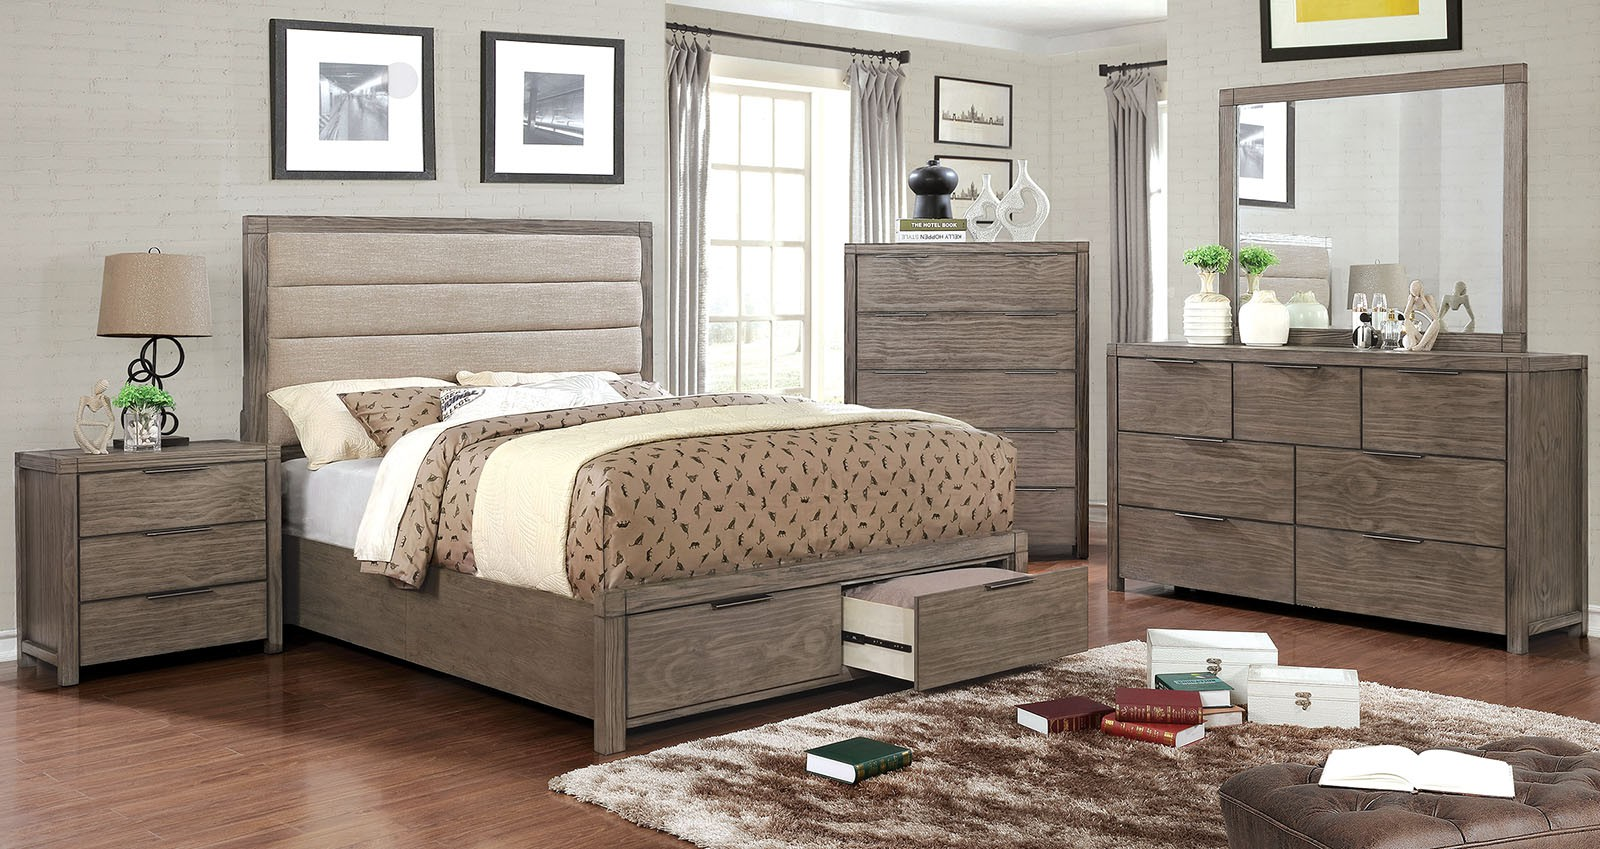 Superieur New Bedroom Furniture Rustic Style Modern Padded Fabric Headboard  California King Size Bed W Drawers FB